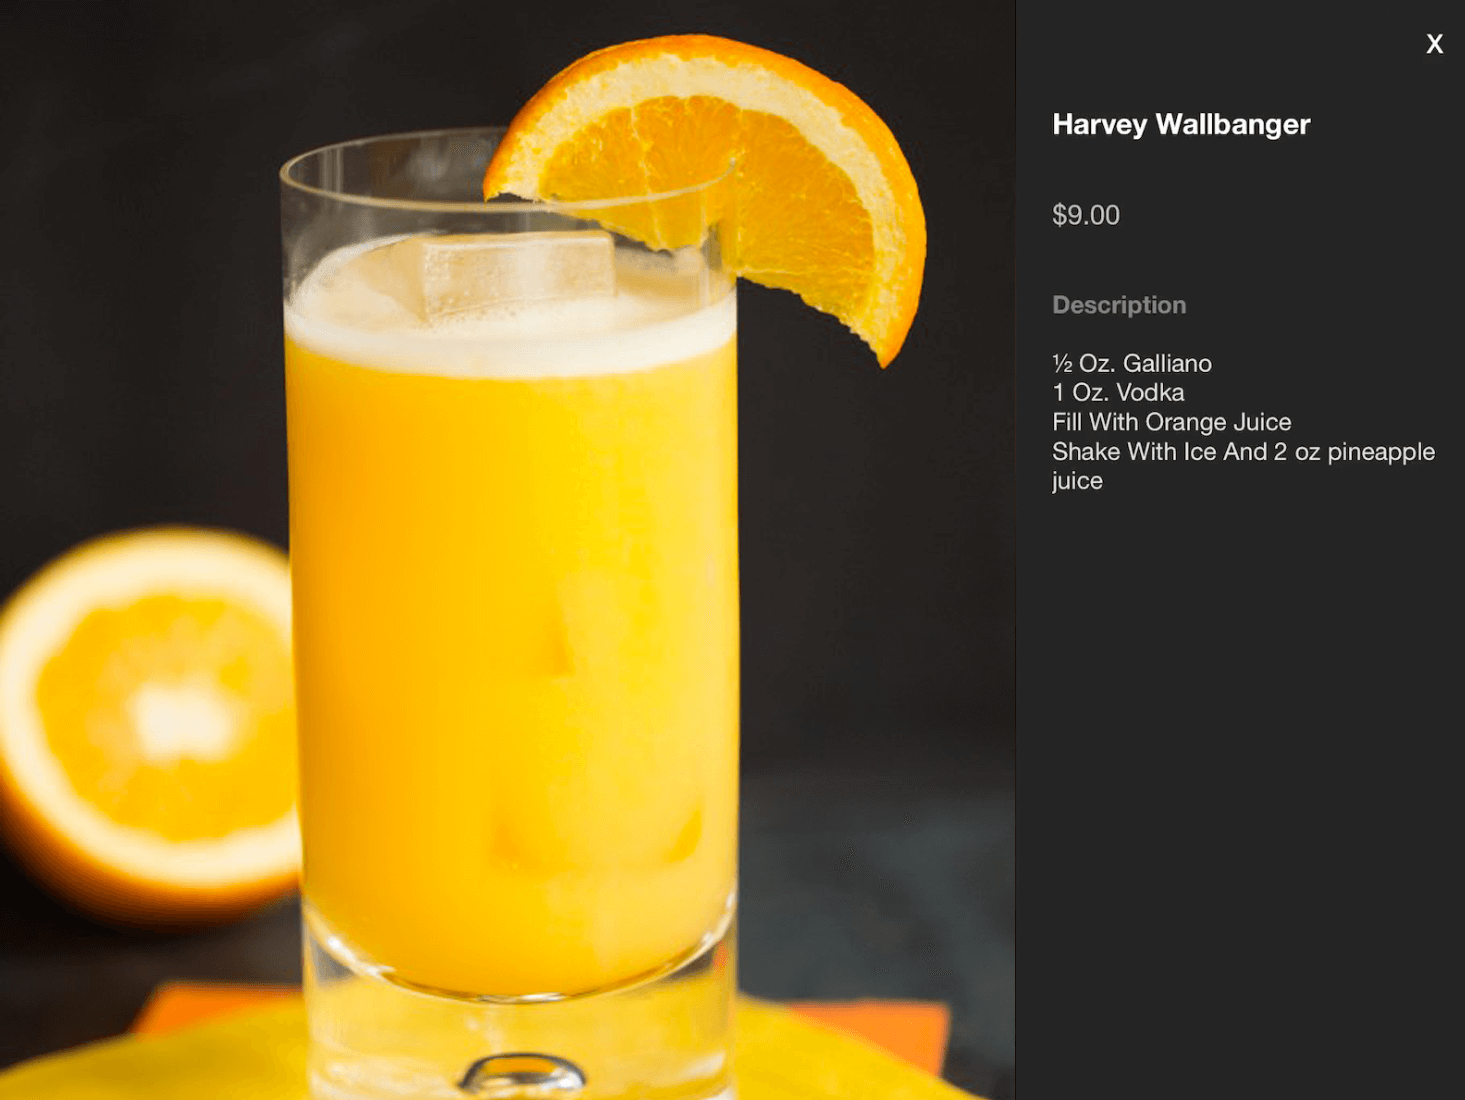 Built in POS cocktail recipes example screen